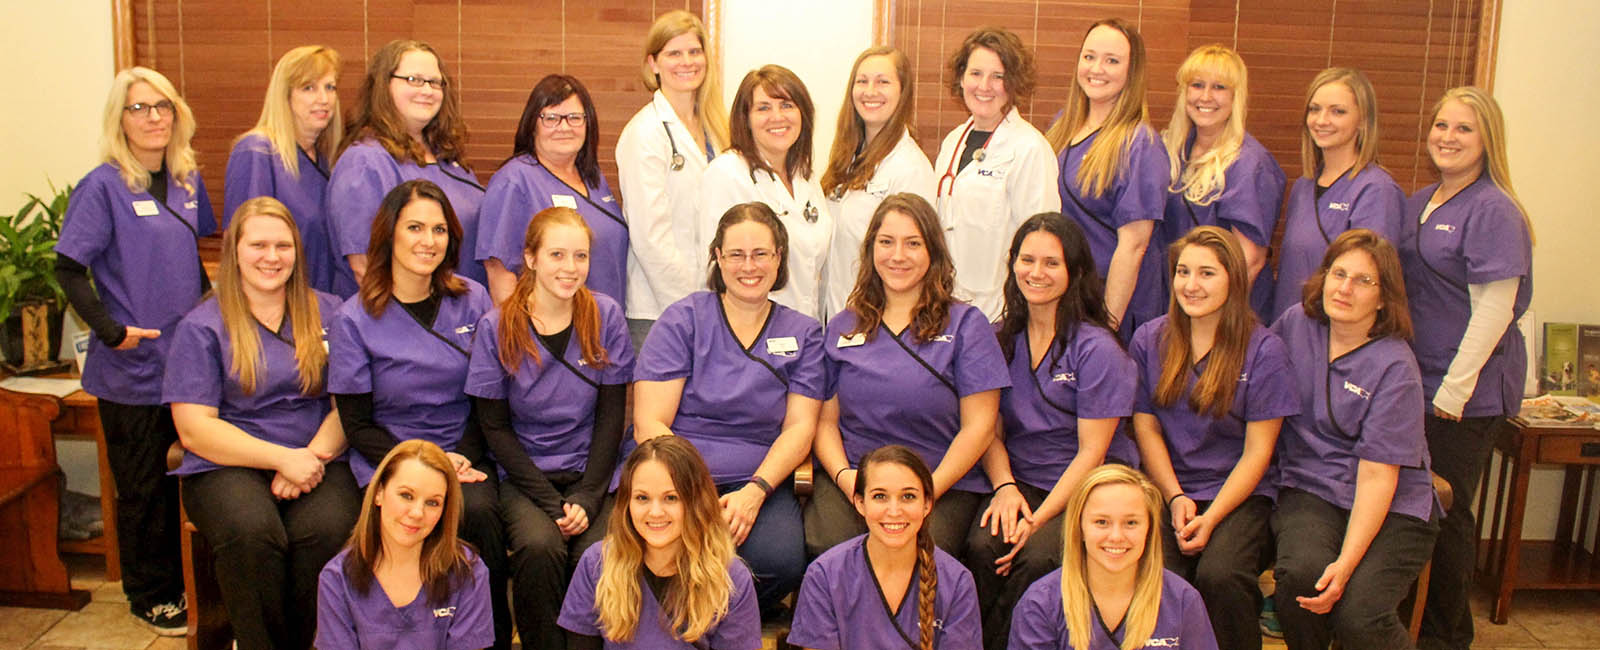 County West Animal Hospital - Our Team